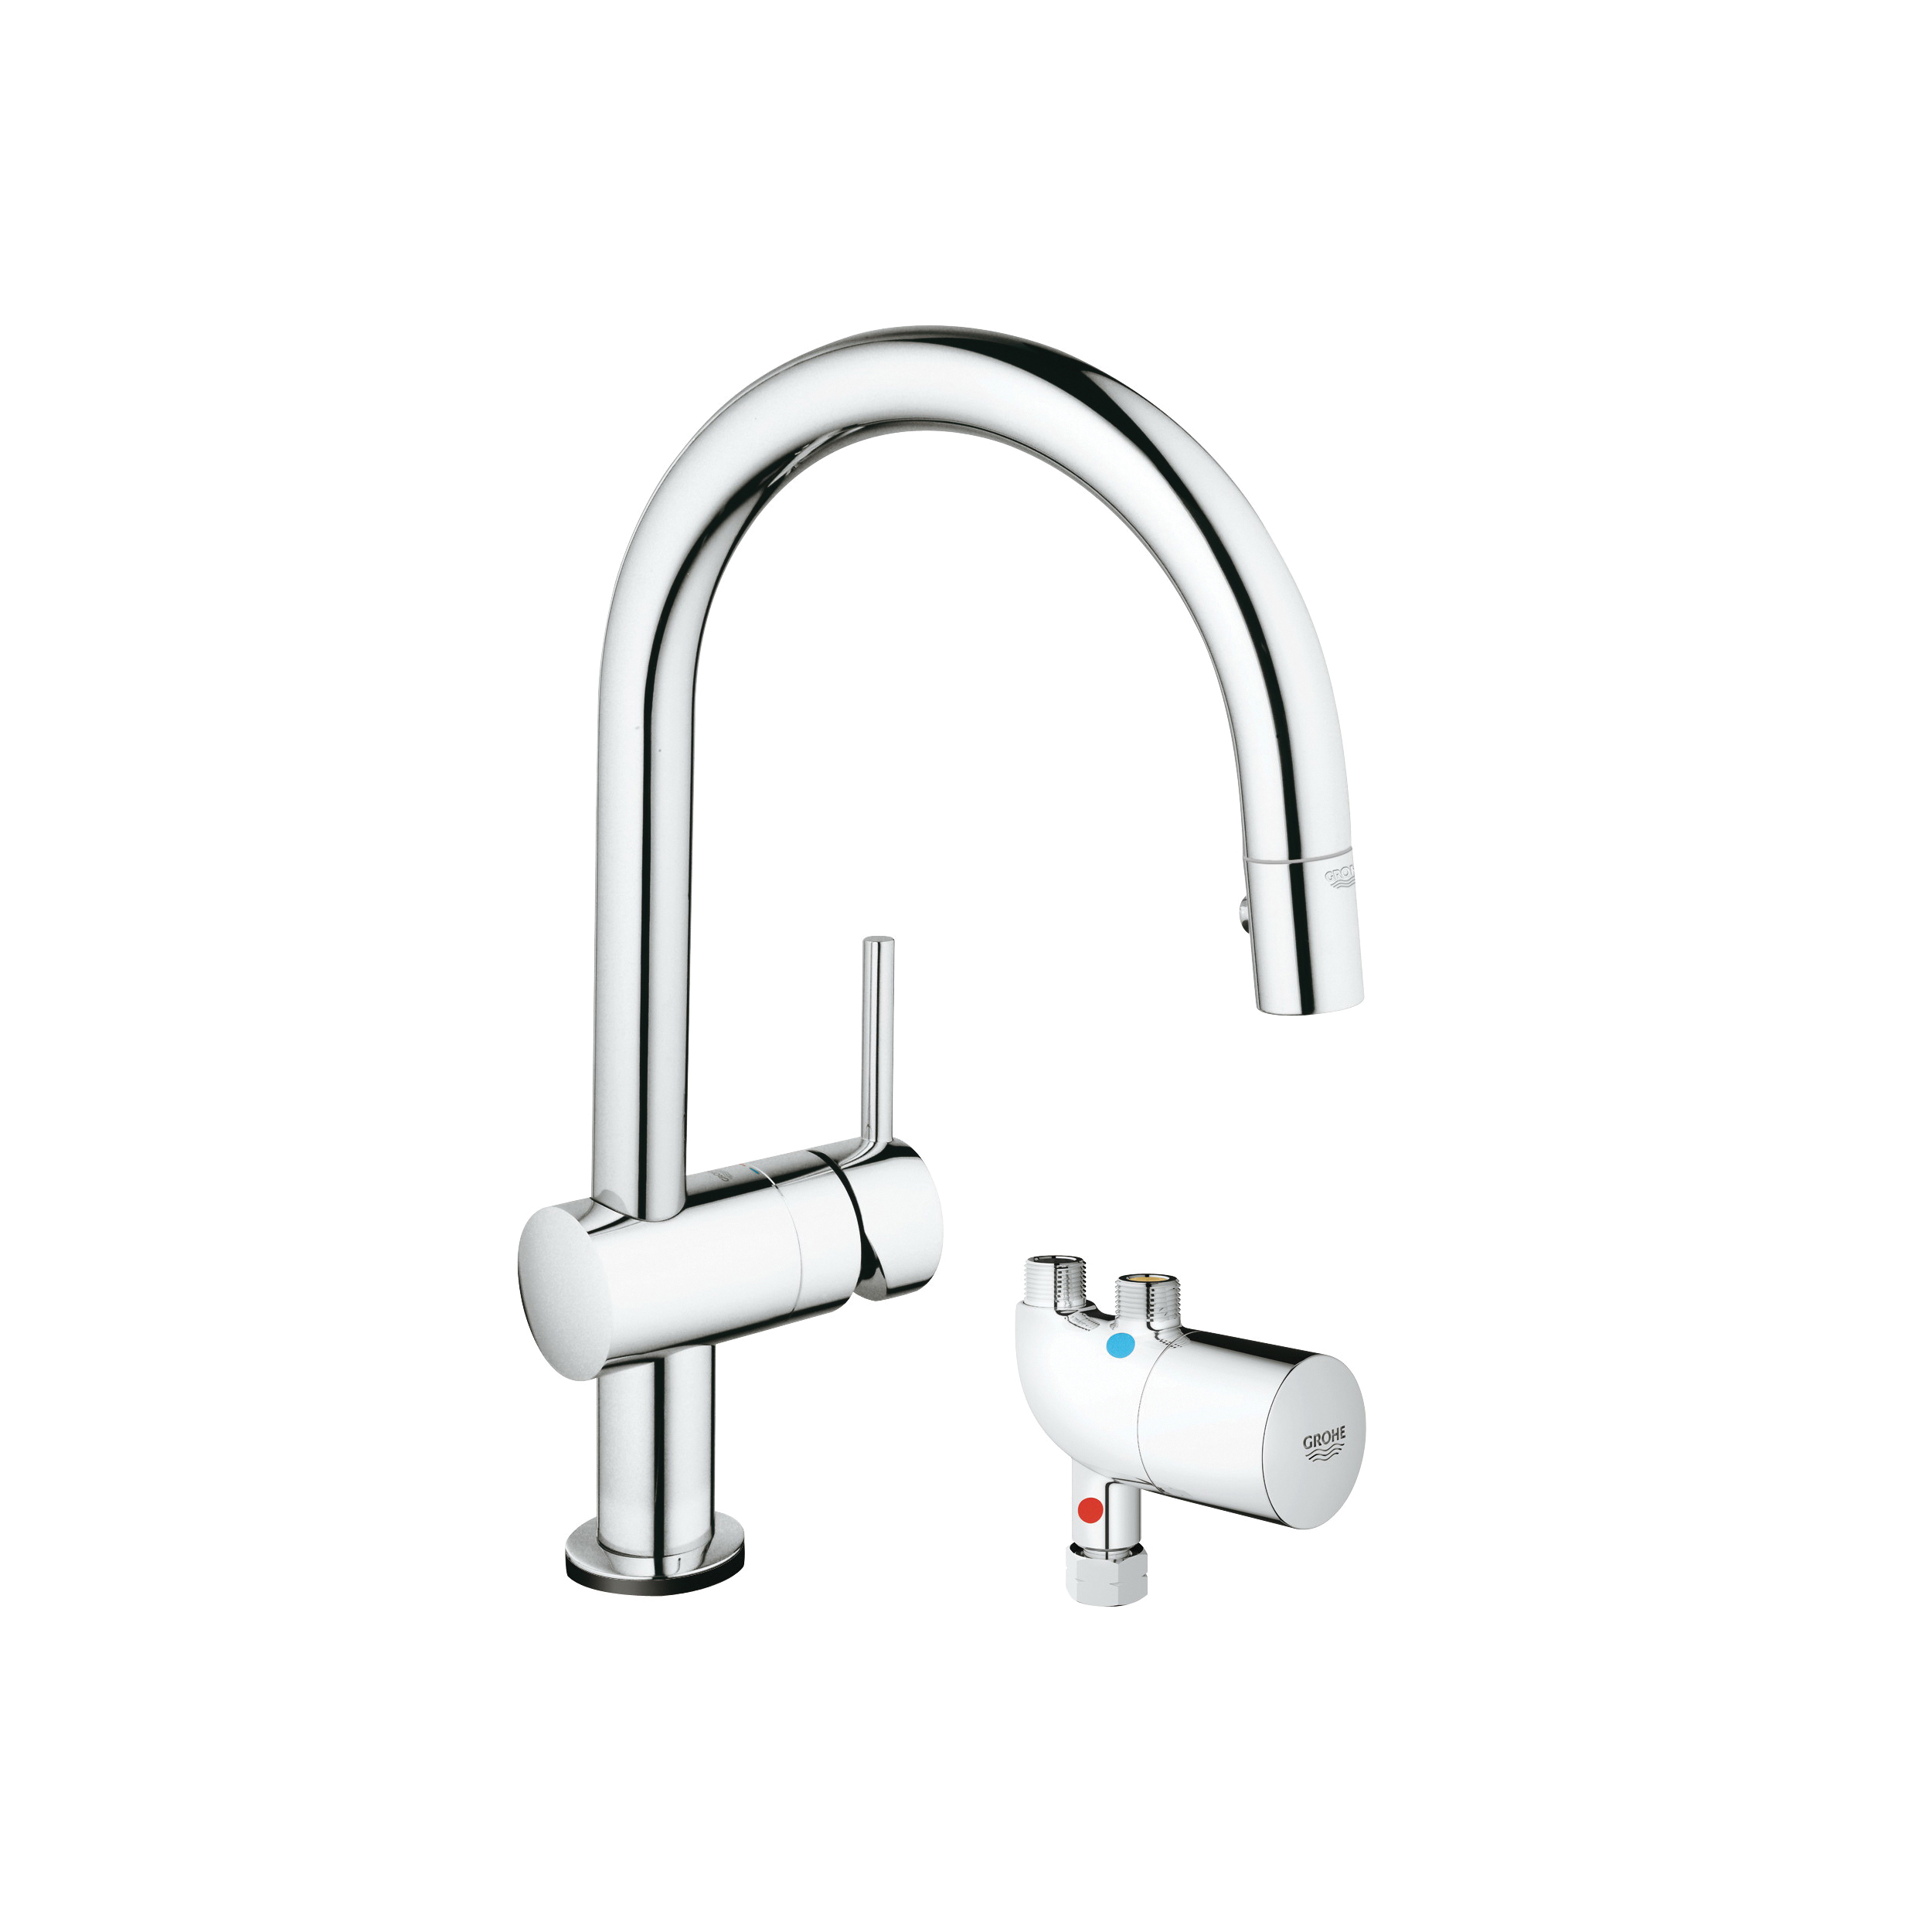 GROHE 31392000 Minta Pull-Down Kitchen Faucet With Grohtherm Micro, 1.75 gpm, StarLight® Chrome, 1 Handle, Import